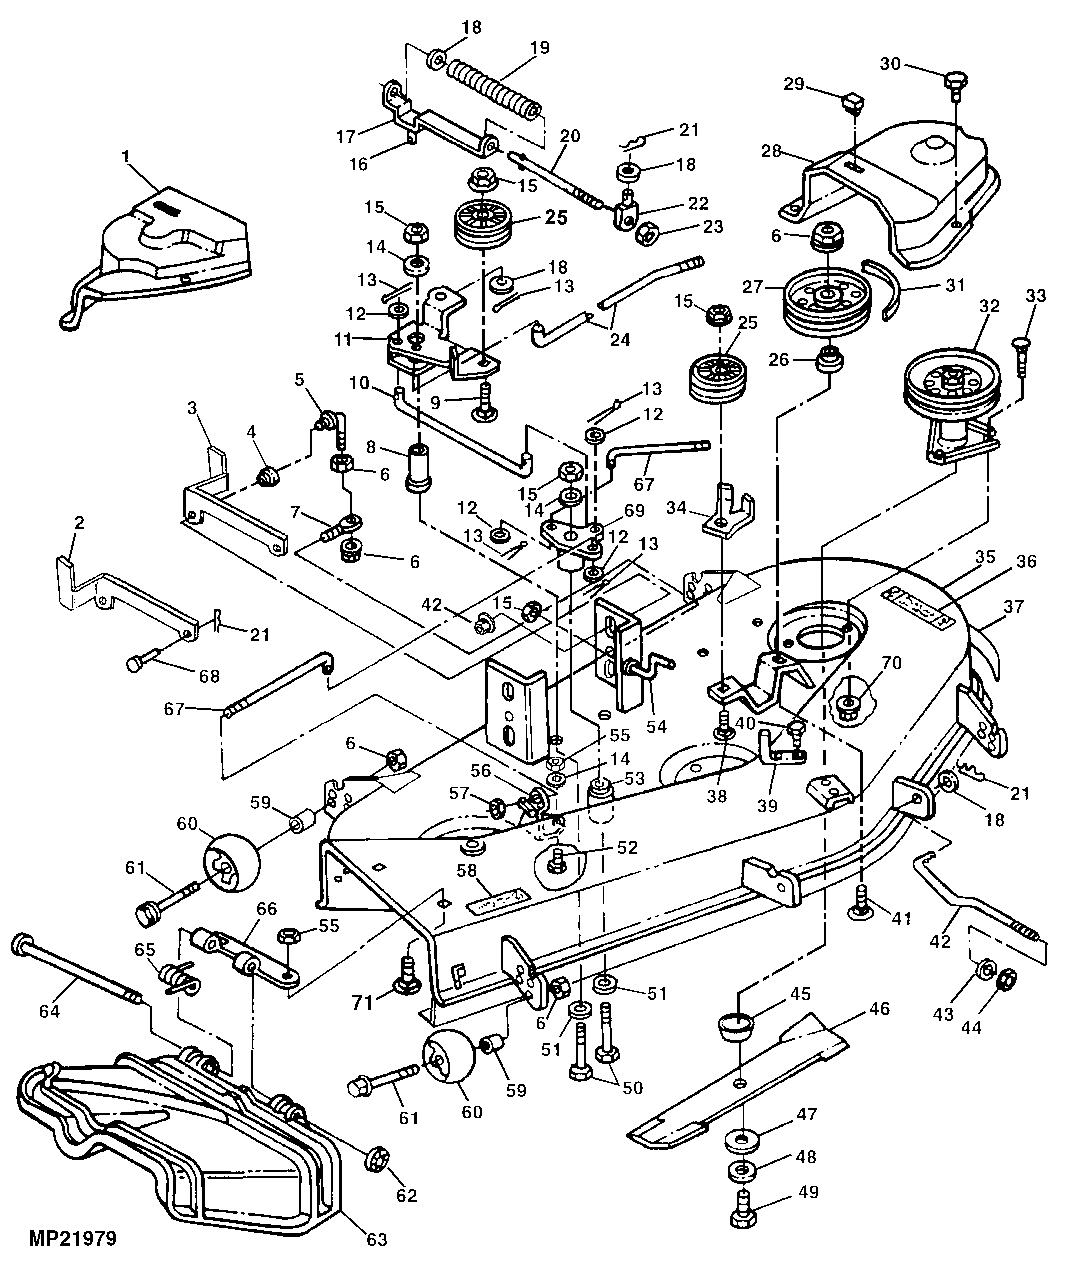 Lt133 Wiring Diagram | Wiring Diagram on john deere gator wiring-diagram, jd la120 wiring-diagram, john deere l125 manual, john deere d125 wiring-diagram, john deere z225 wiring-diagram, john deere 445 wiring-diagram, john deere 165 wiring-diagram, john deere l102 wiring-diagram, john deere l118 wiring-diagram, john deere 425 wiring-diagram, john deere m wiring-diagram, john deere lx255 wiring-diagram, john deere l110 wiring-diagram, john deere stx38 wiring-diagram, john deere 112 wiring-diagram, john deere rx75 wiring-diagram,